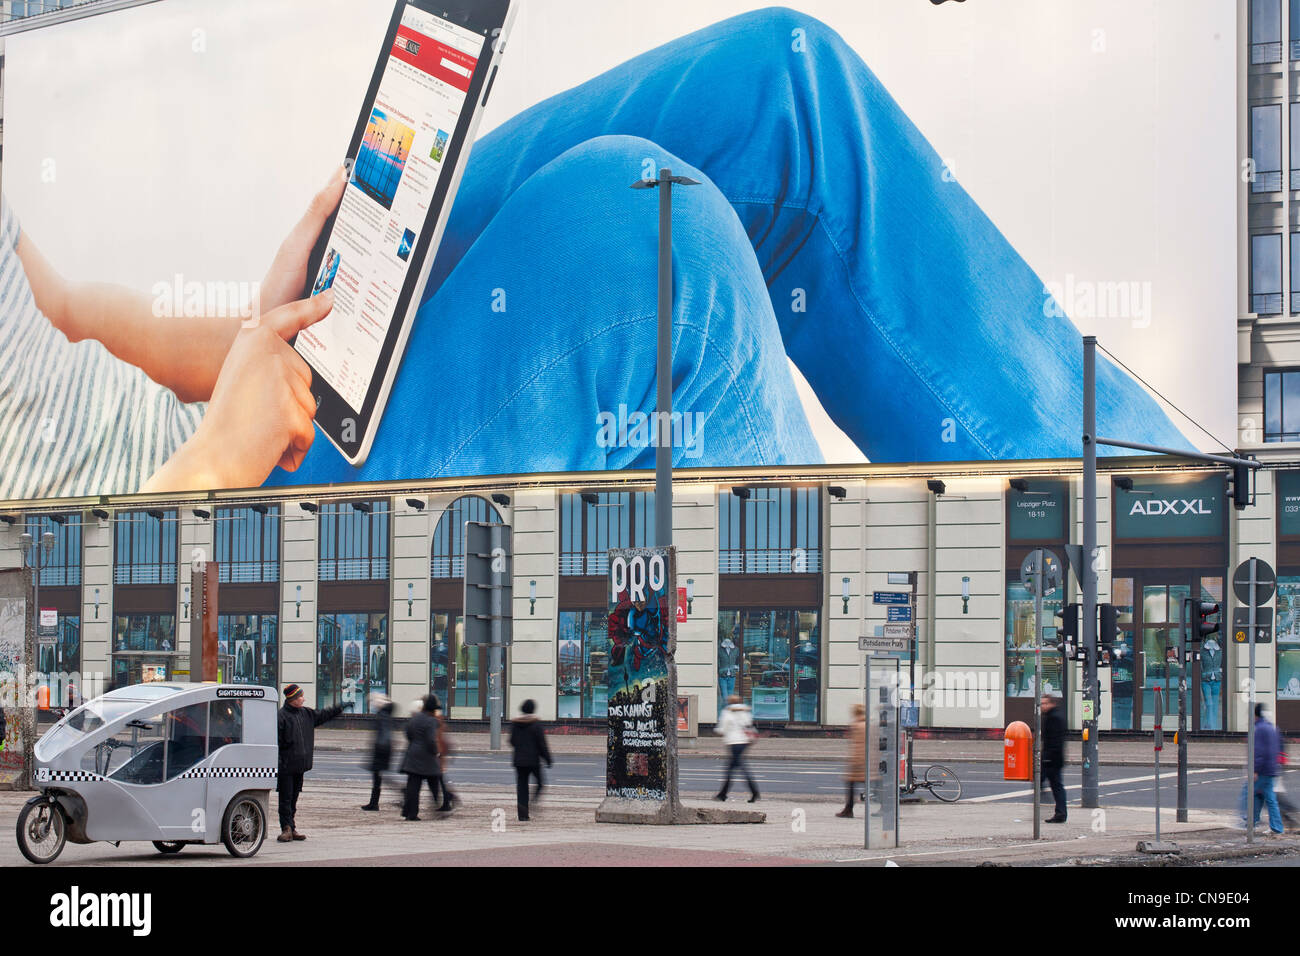 Germany, Berlin, Mitte, Postdamer Platz, an I-Pad advertisement - Stock Image